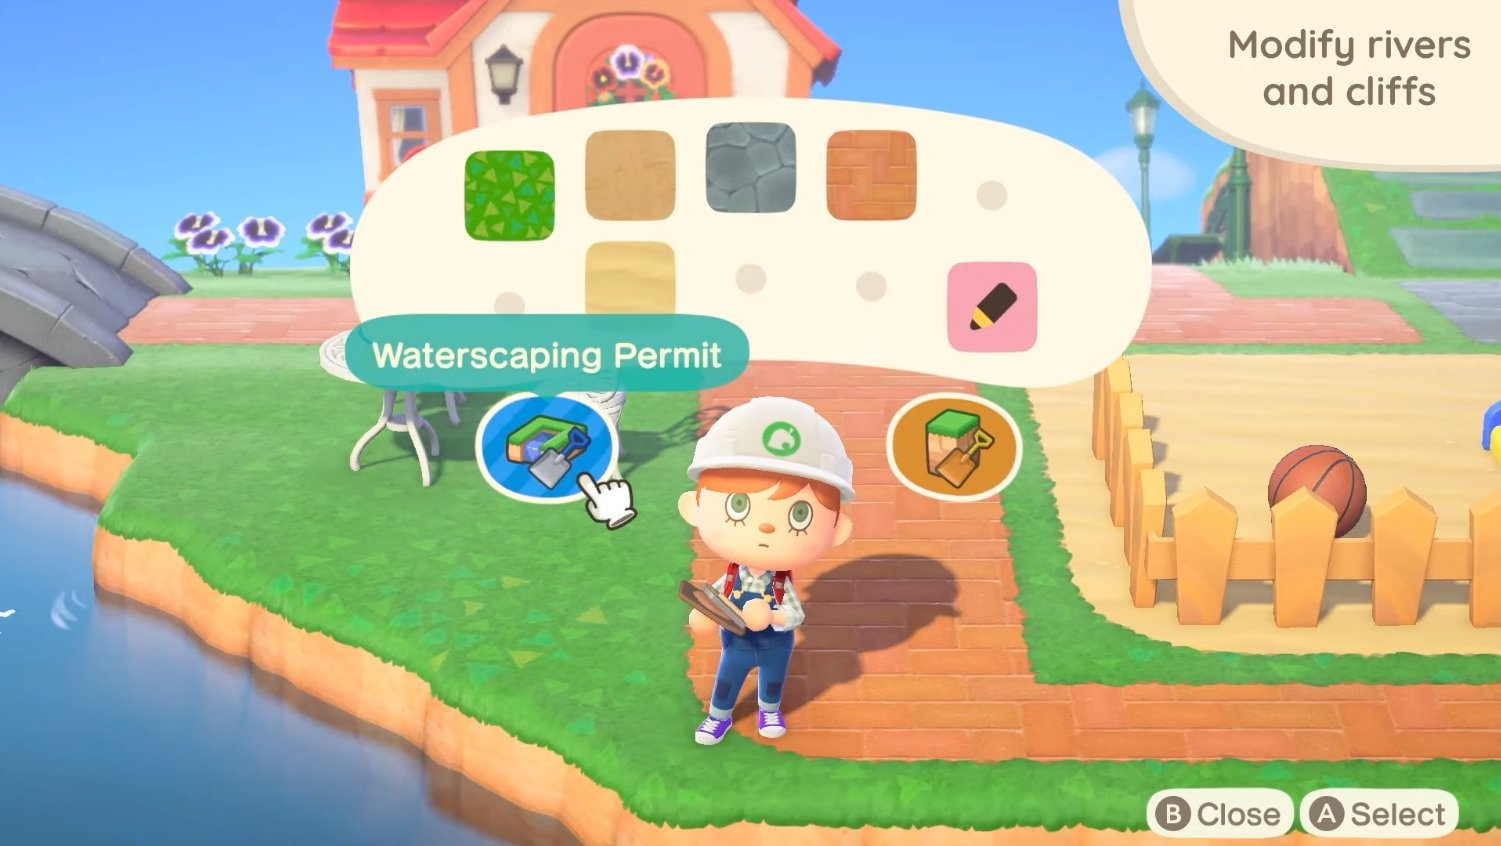 How to change rivers and cliffs in Animal Crossing: New Horizons